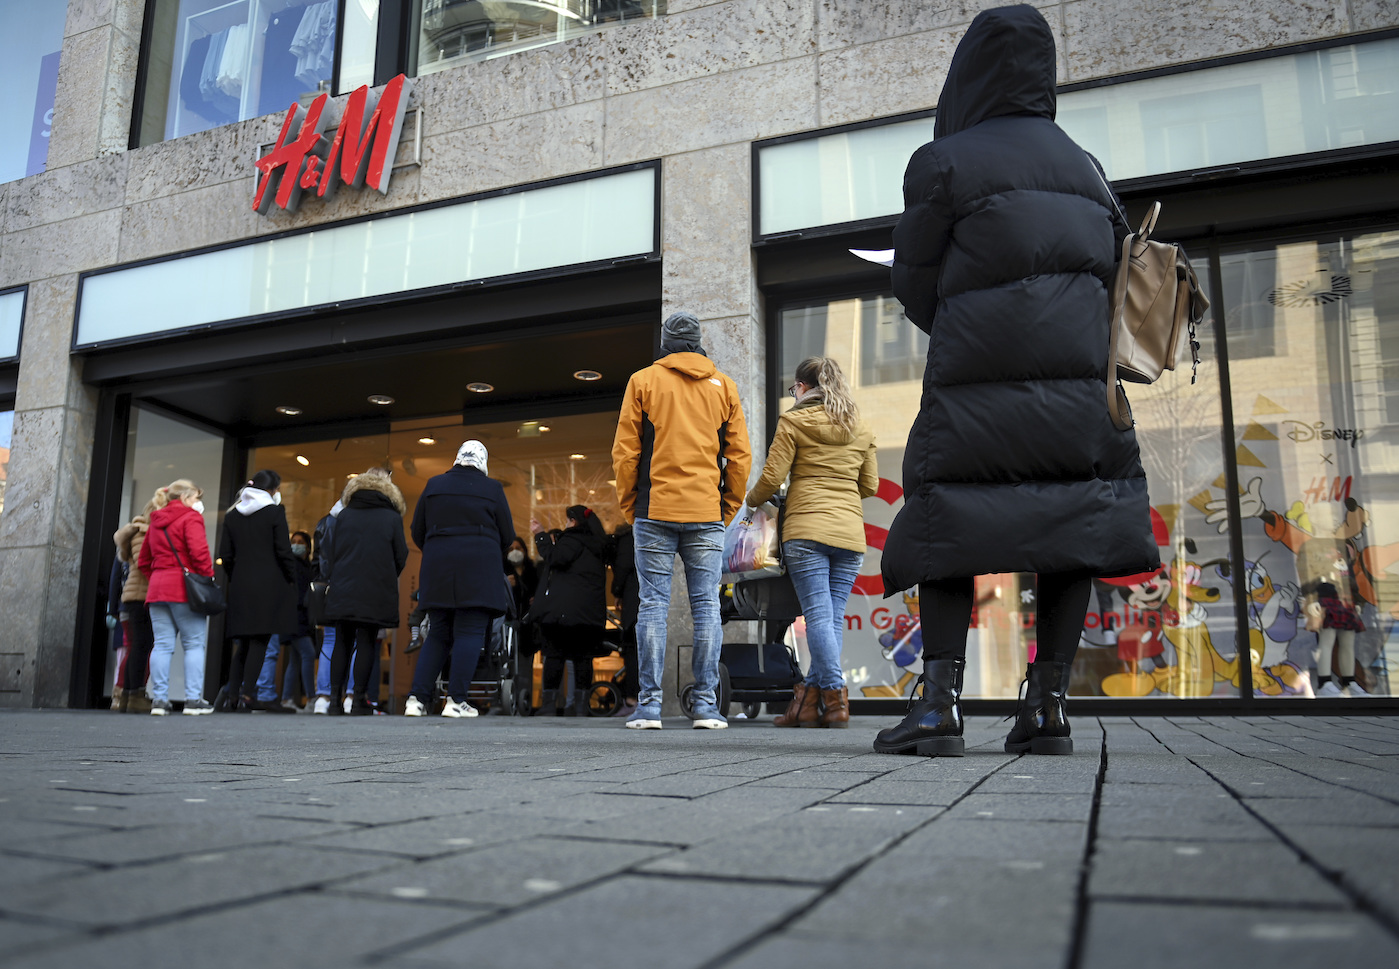 Hennes and Mauritz's quarterly net sales fell 27 percent to $4.7 billion, with 900 of its 5,000+ fashion stores reopening in the period.